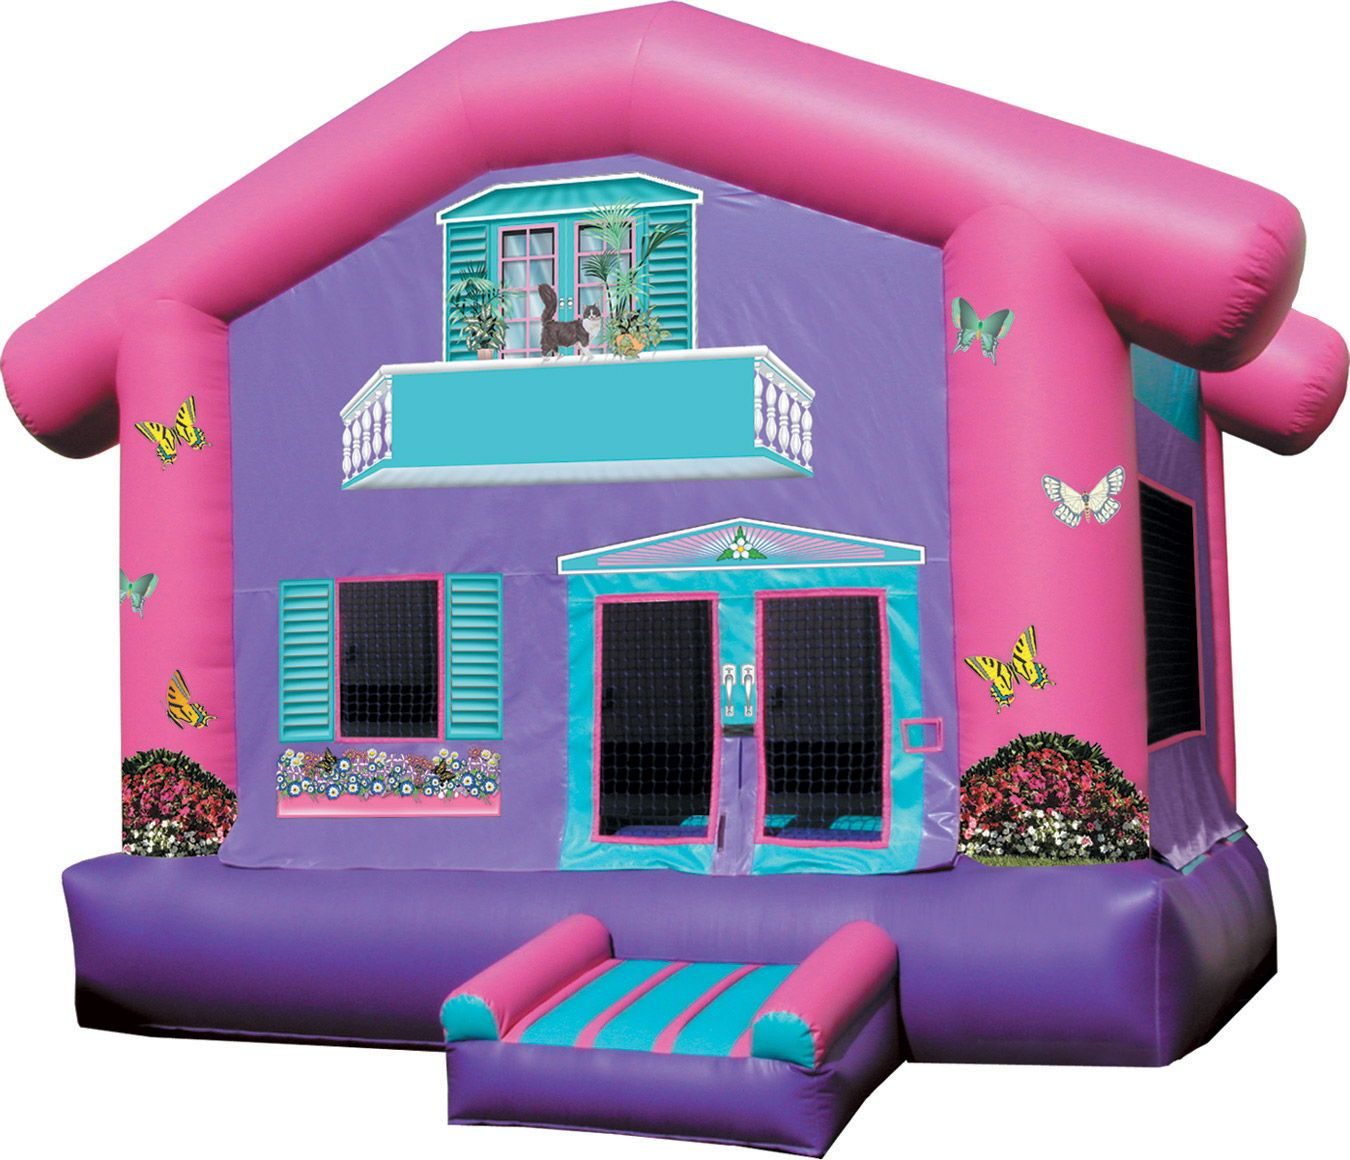 Doll house bouncer bounce house kids party rentals